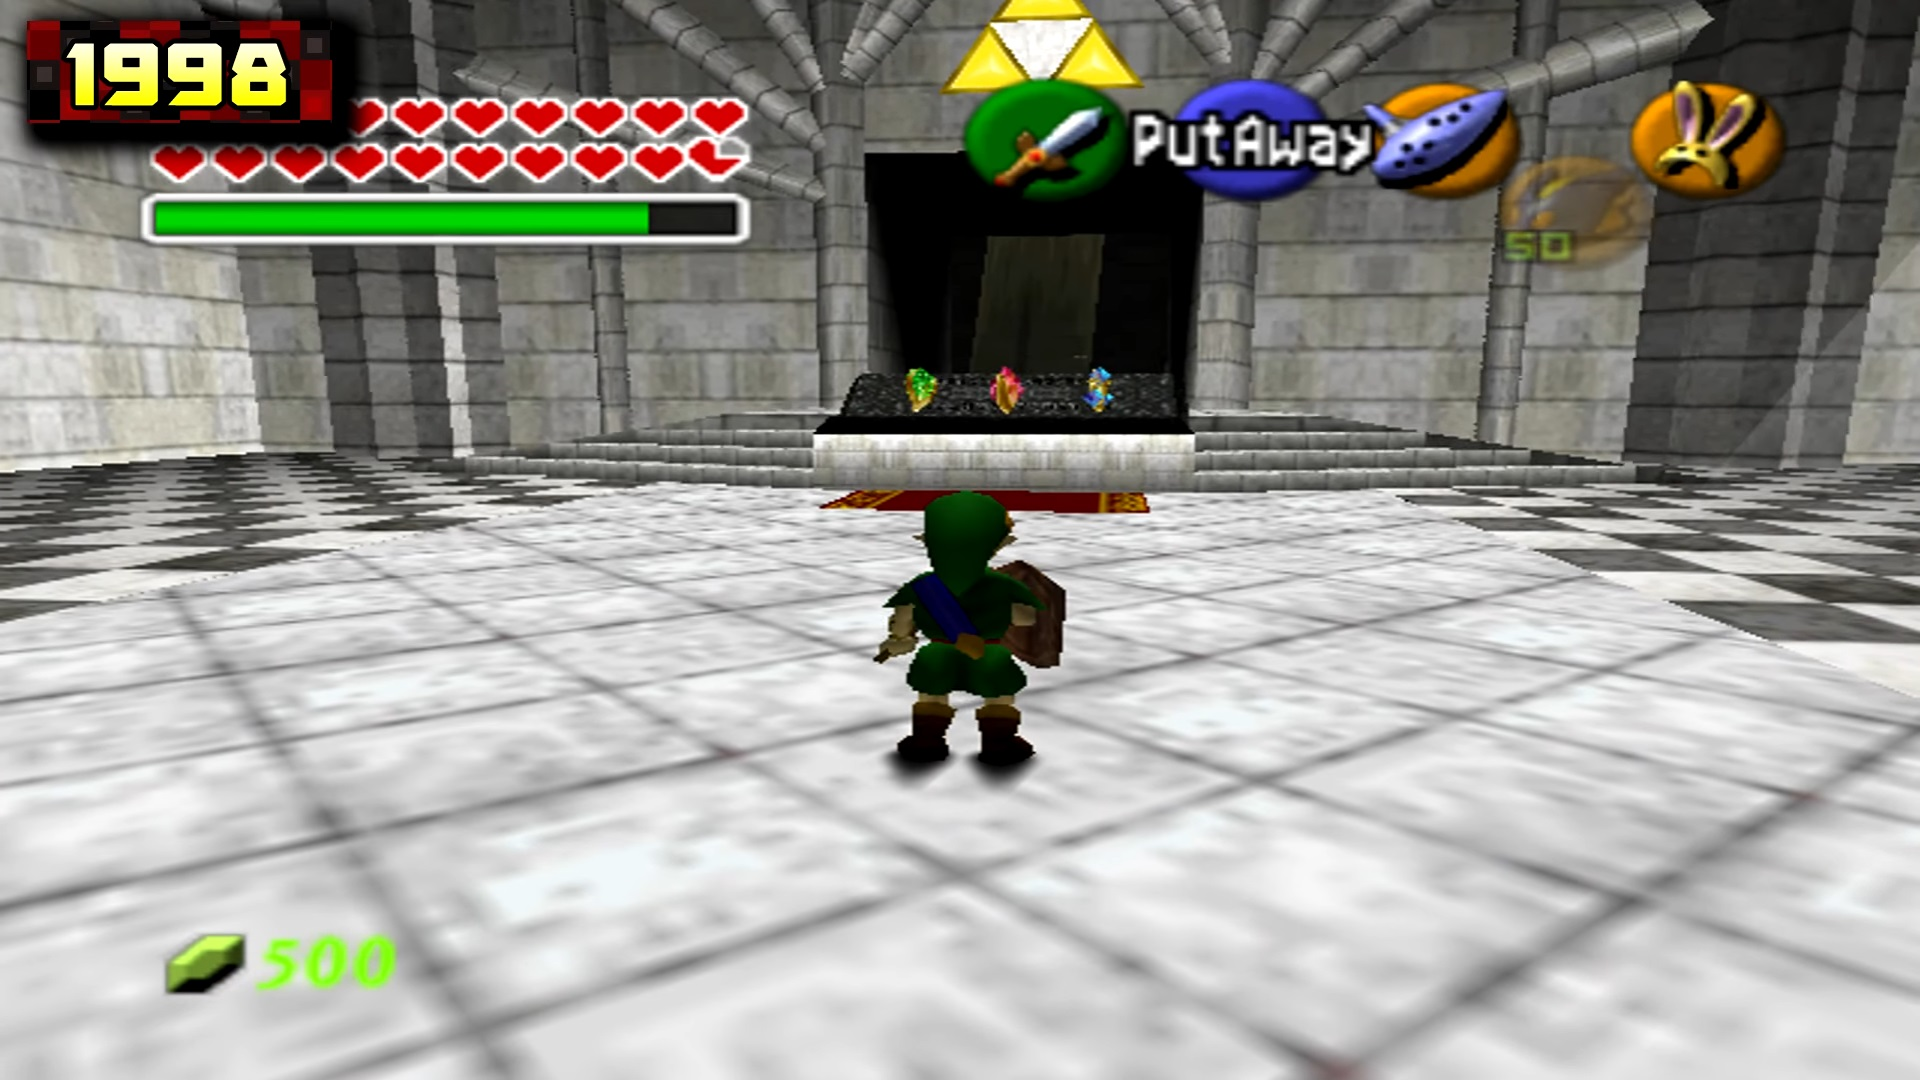 The Legend of Zelda: Ocarina of Time comparison - Original (1999) vs